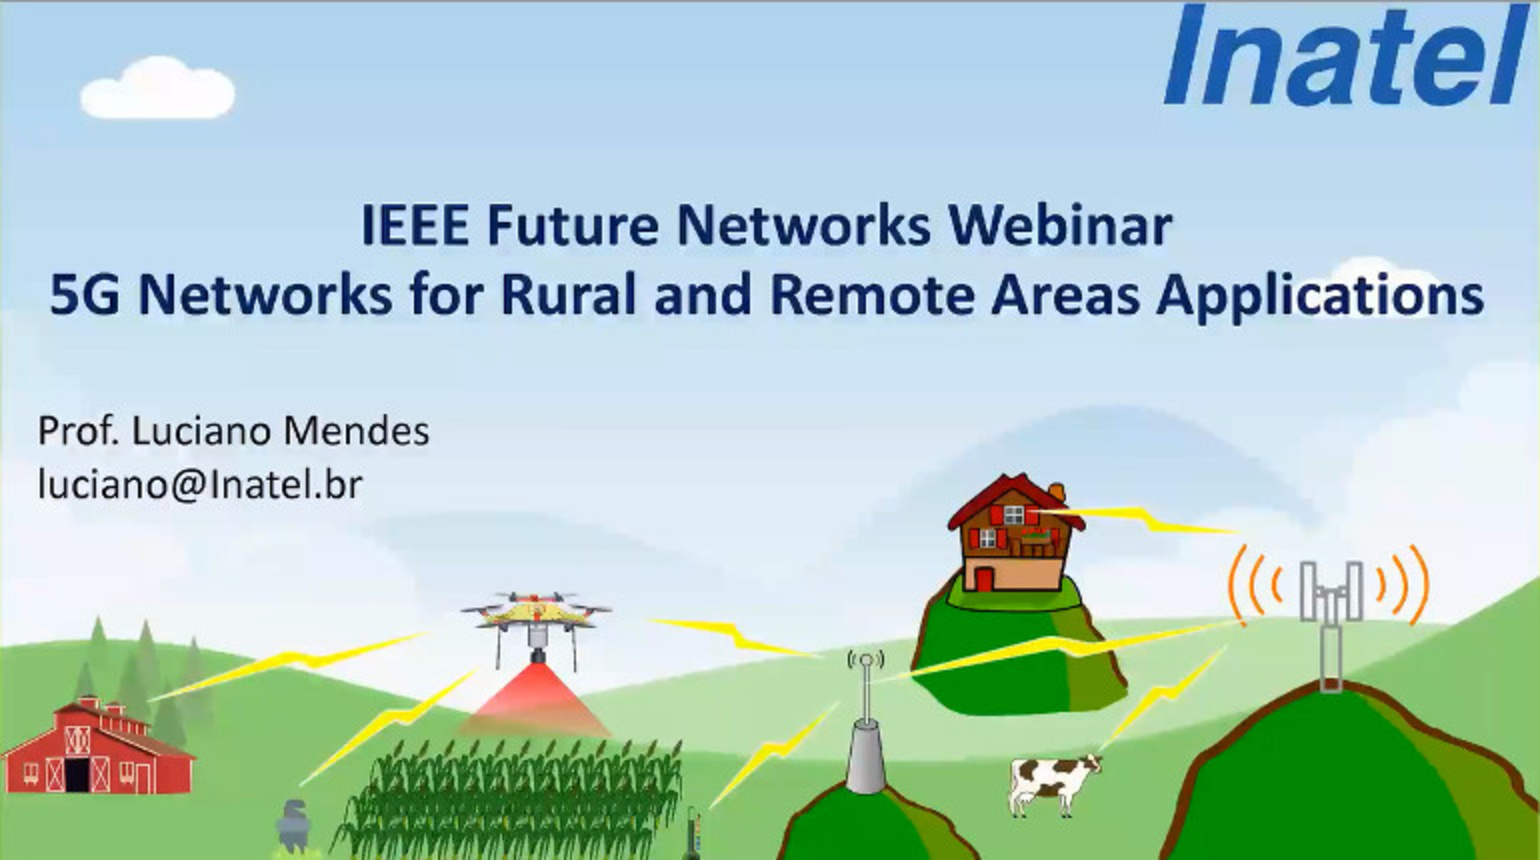 IEEE Future Networks: 5G Networks for Rural and Remote Areas Applications